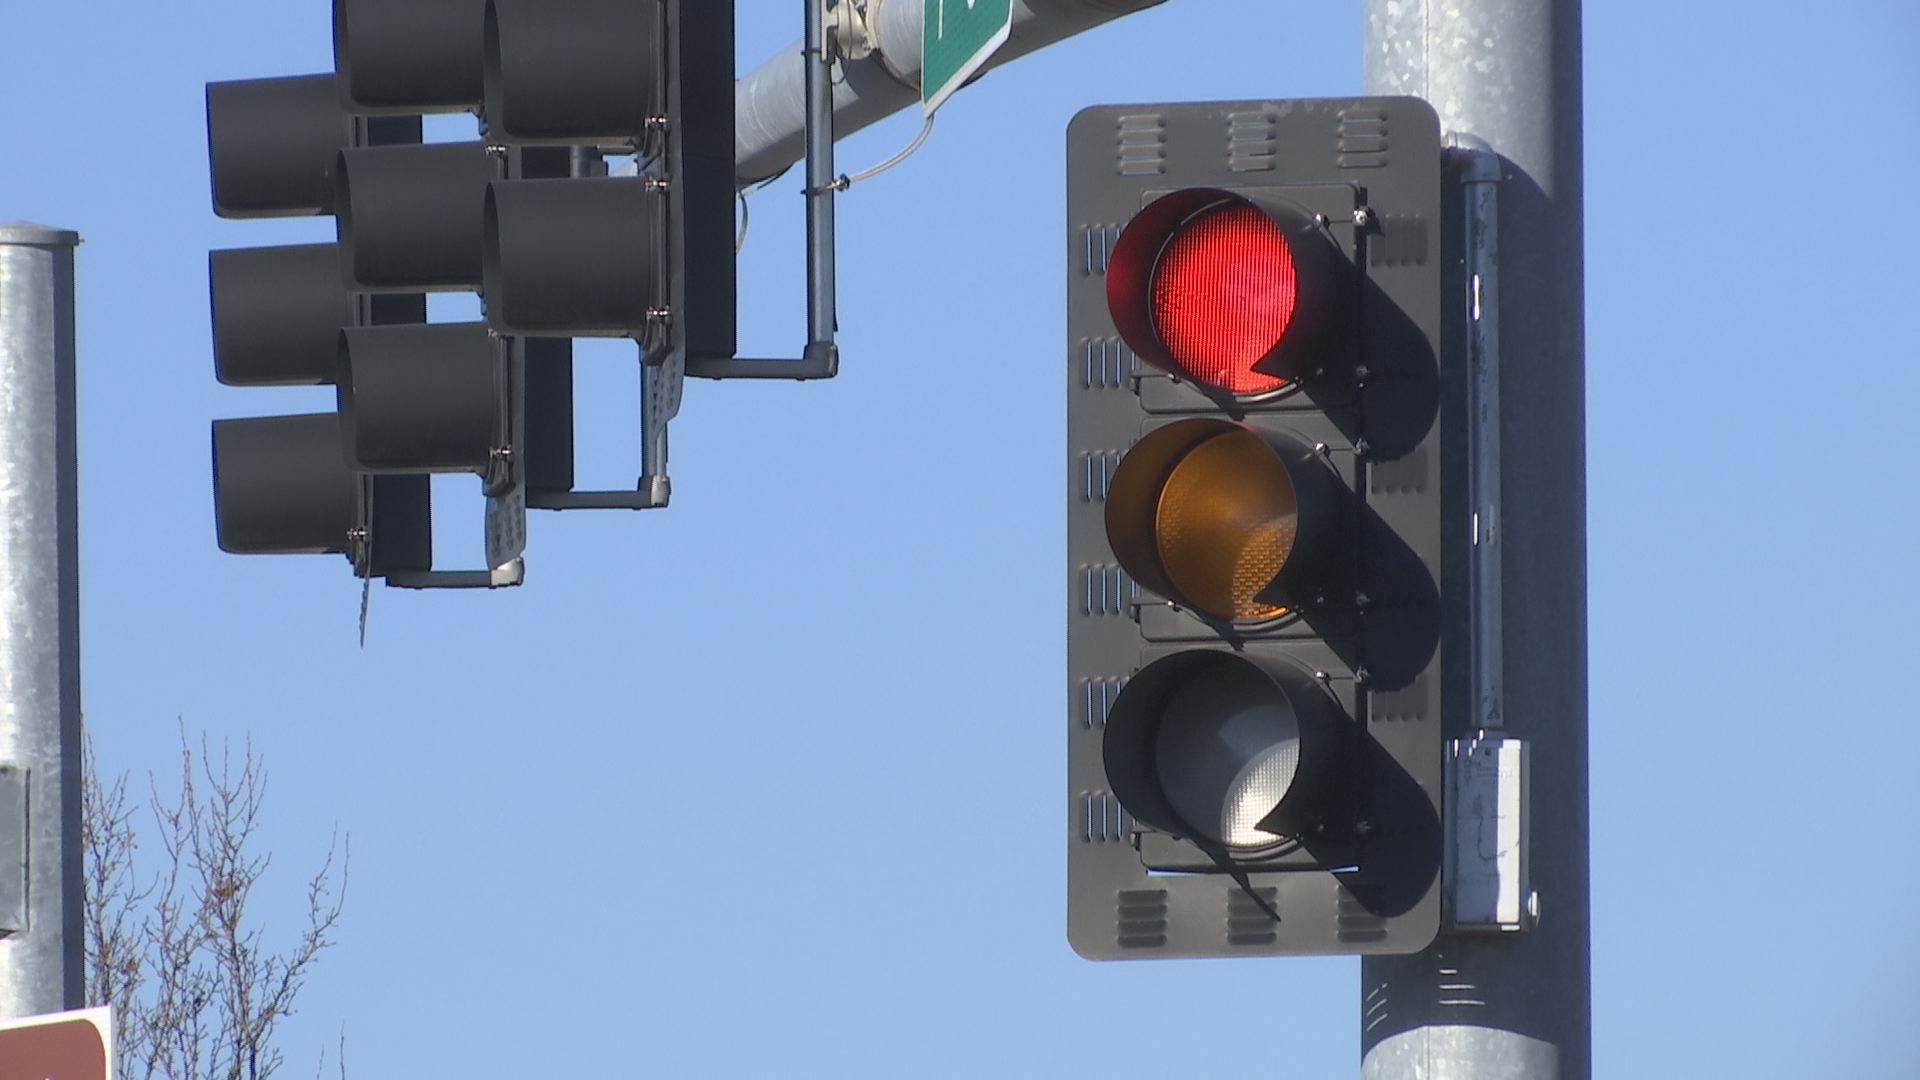 Red light cameras coming to Grants Pass - KOBI-TV NBC5